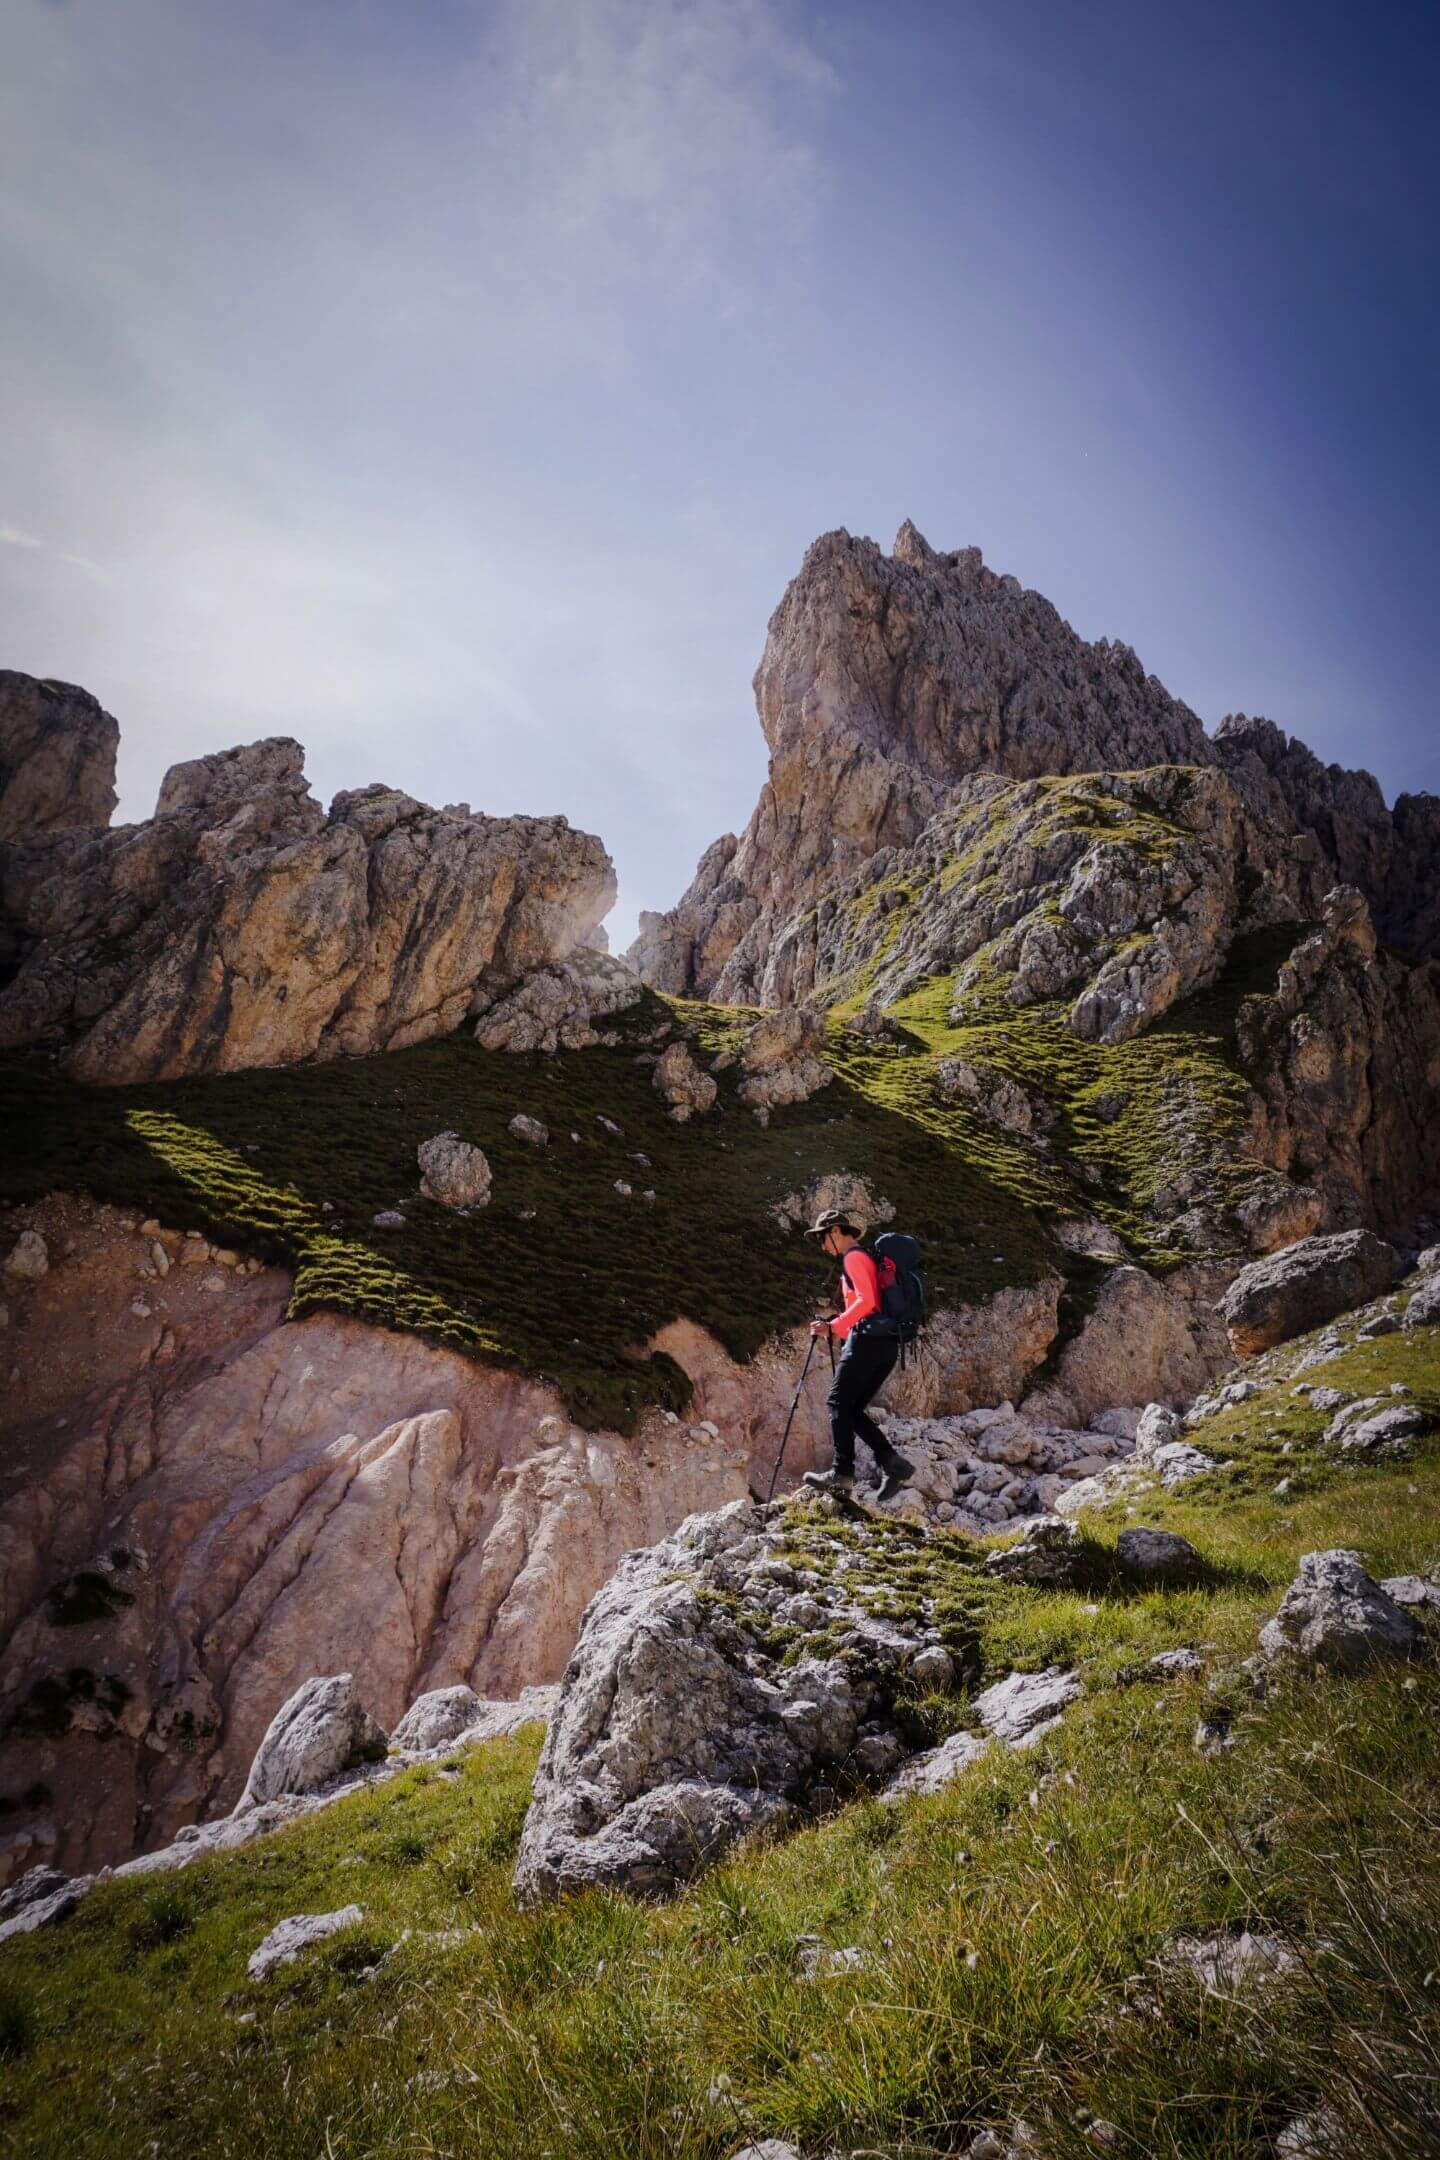 Descent from Mittagsscharte to Val Gardena, Puez - Odle, Dolomites